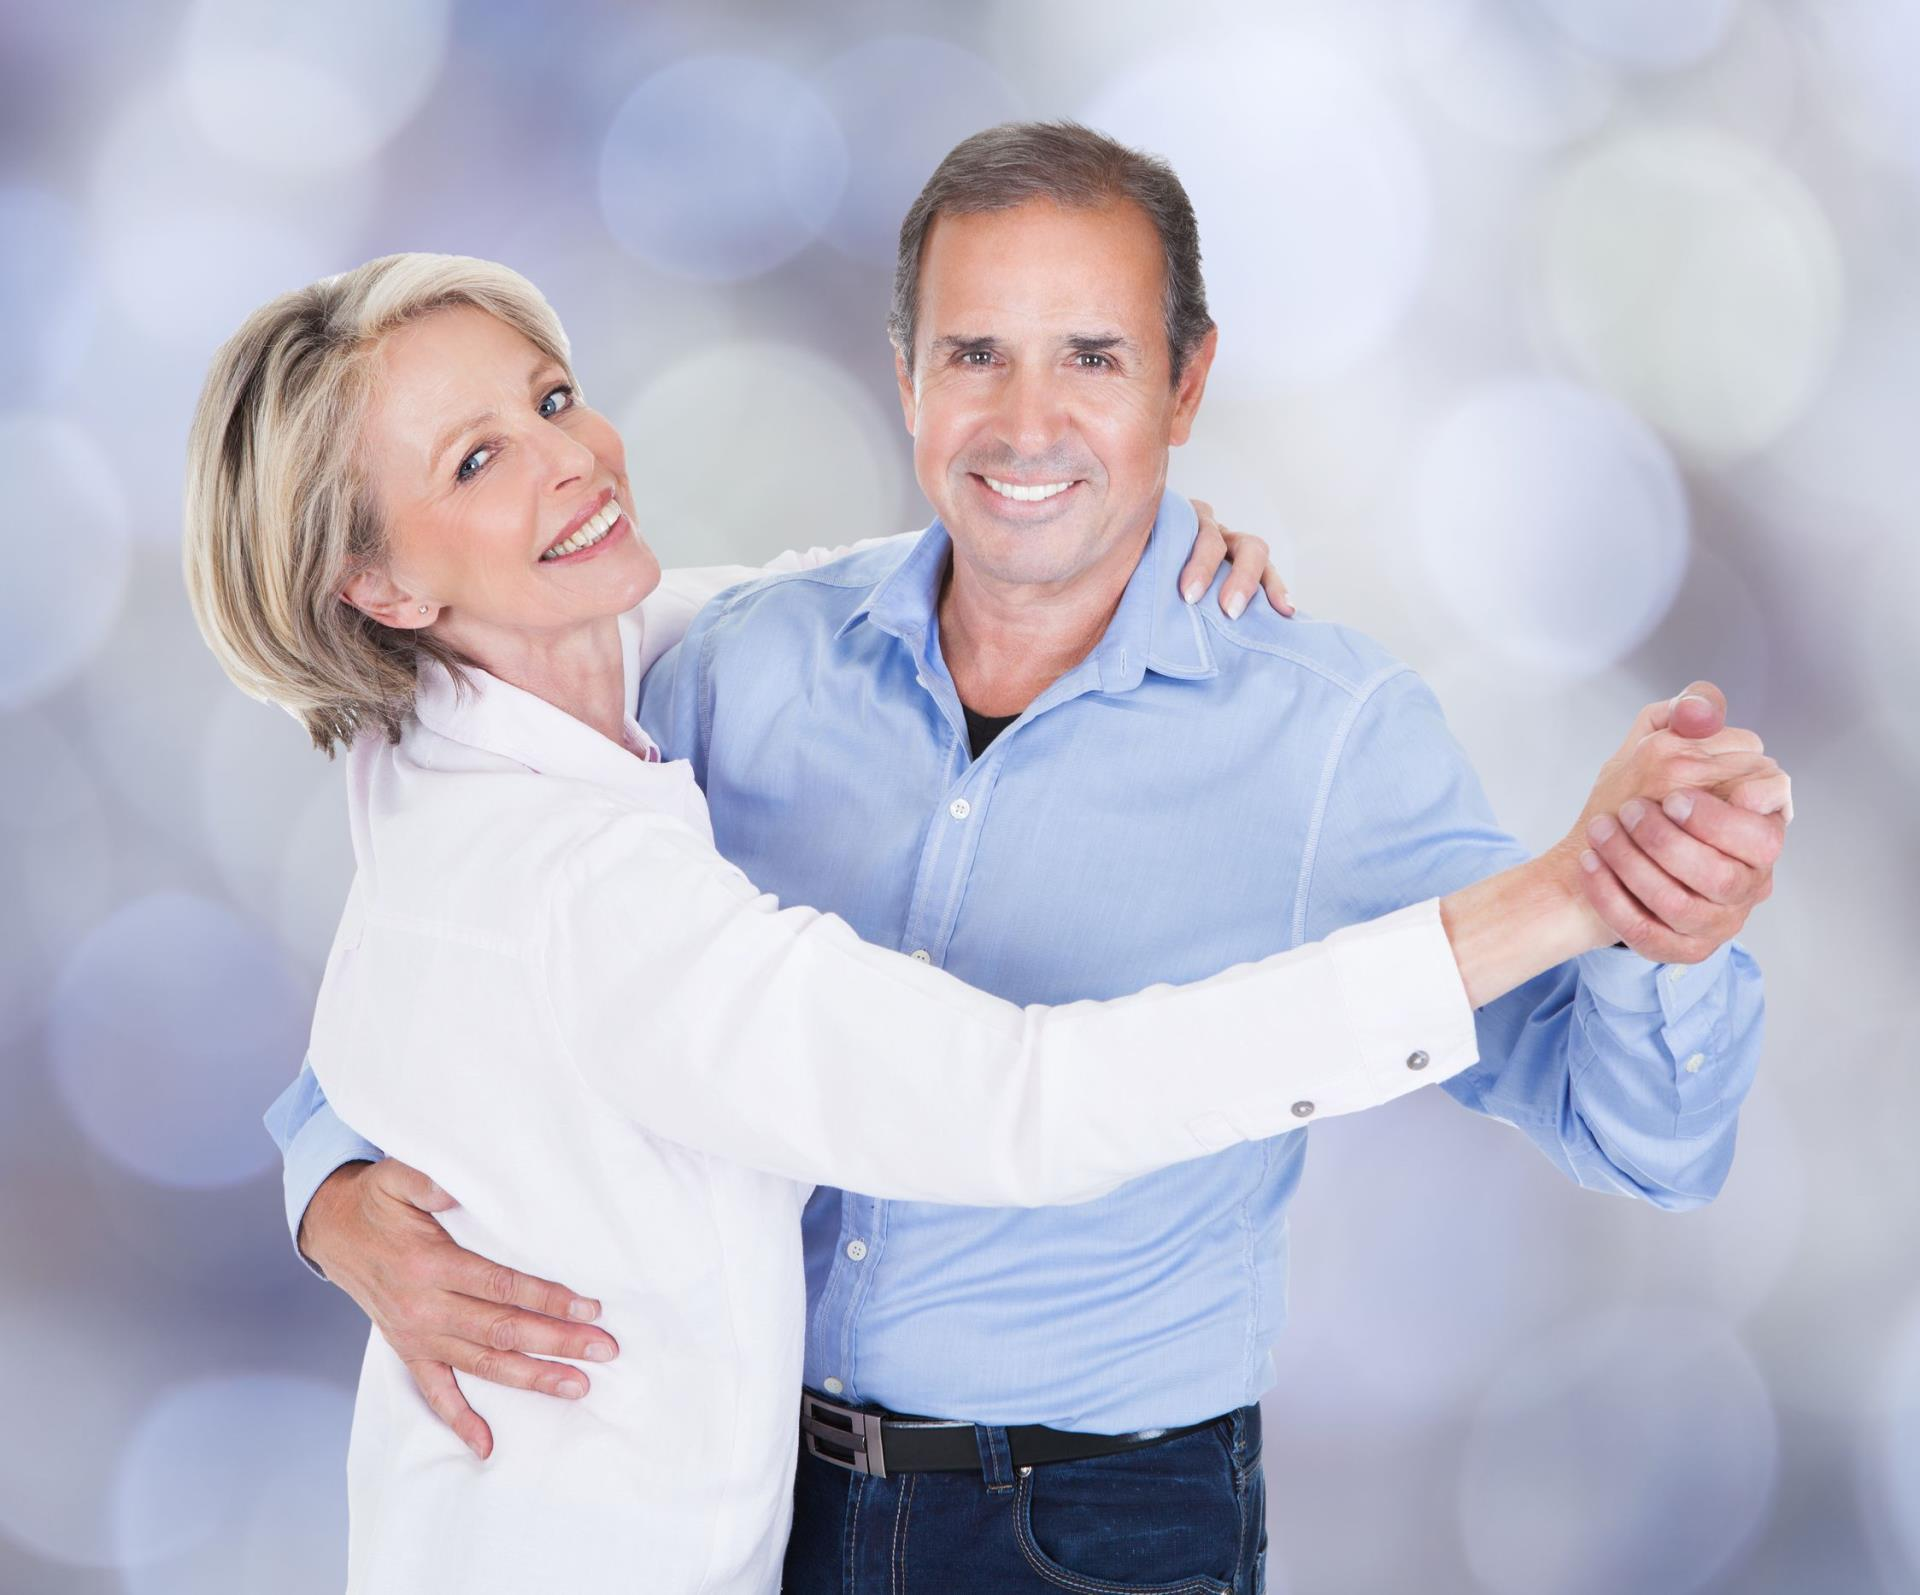 Dancing couple on blue background